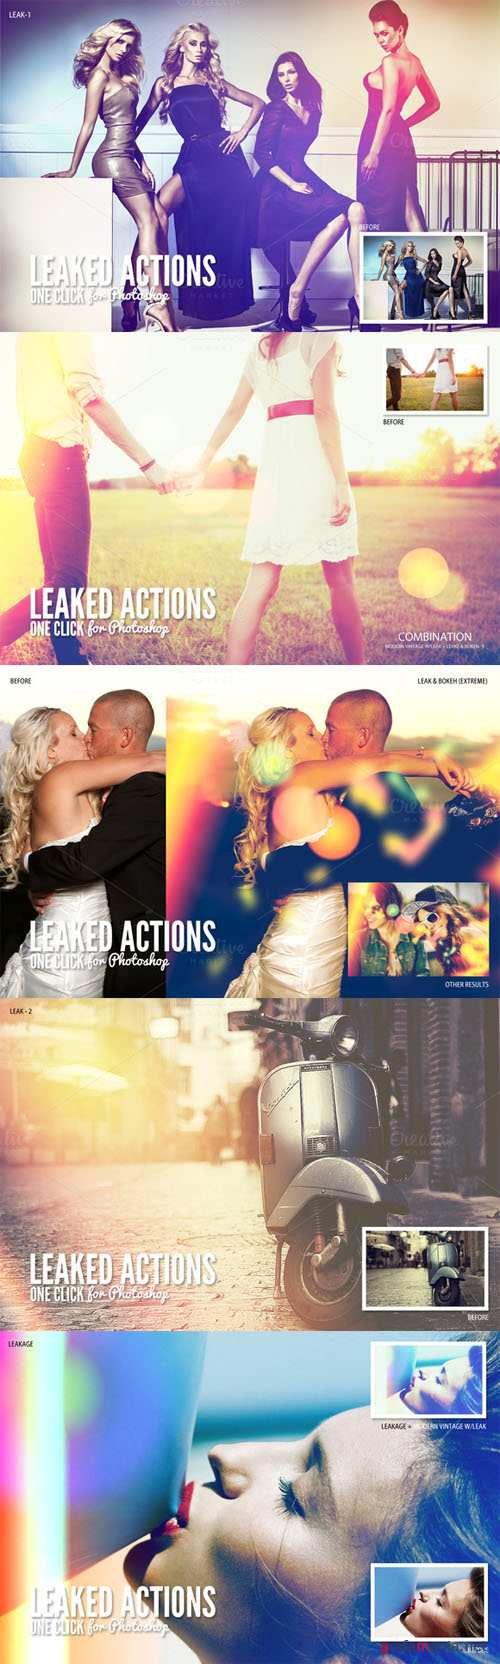 CreativeMarket - Leaked Photoshop Actions Series One 107339